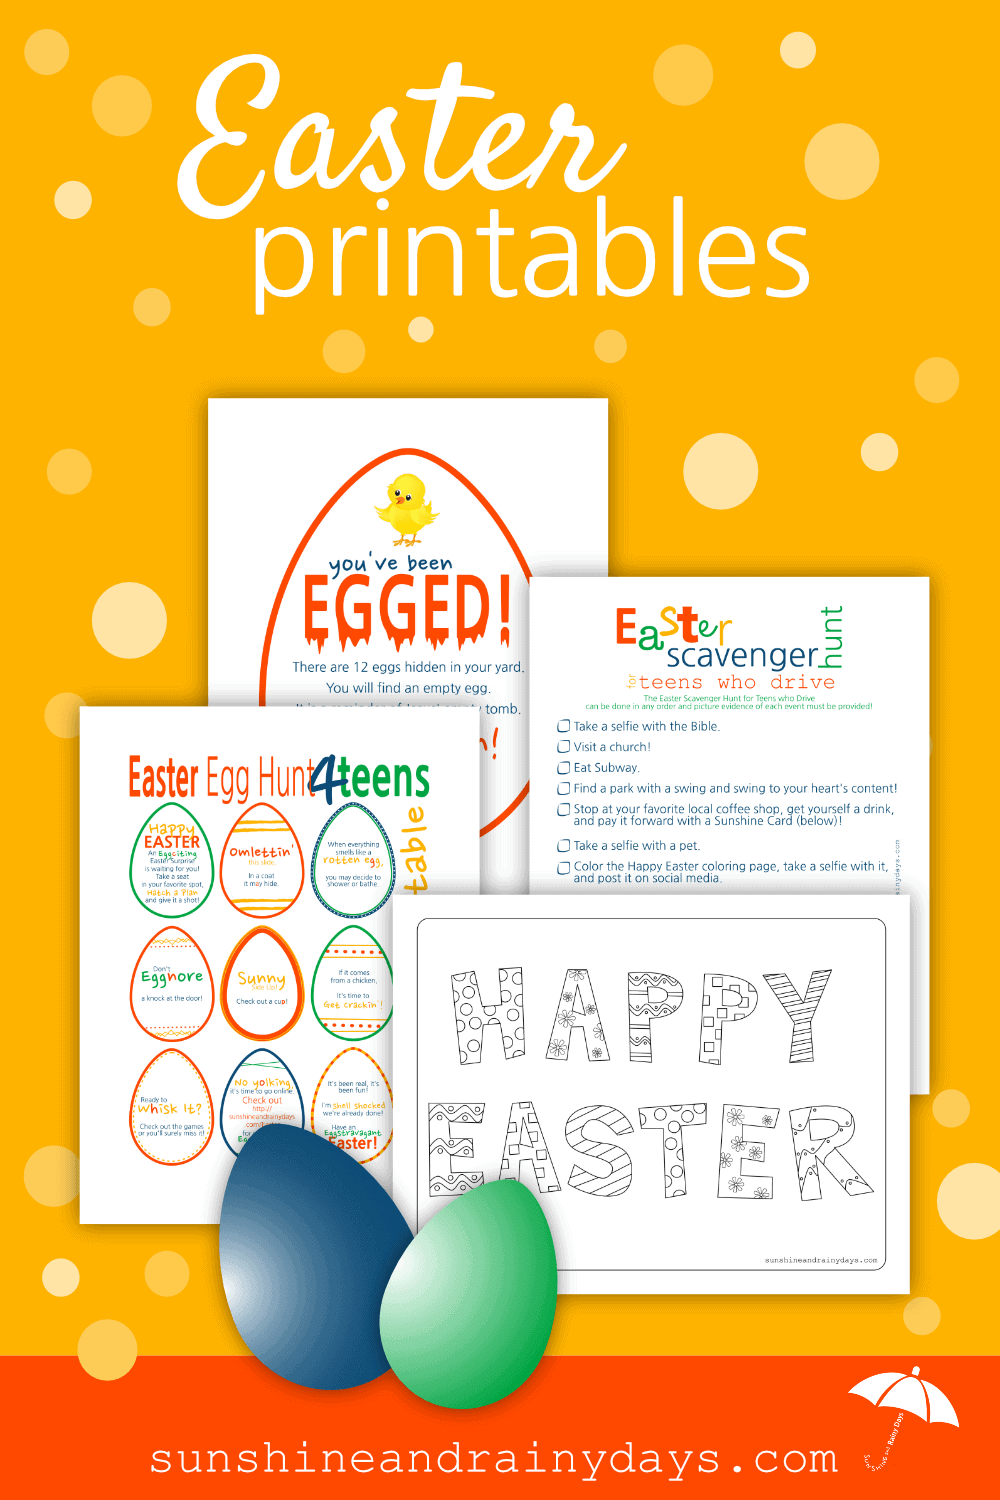 Bunnies, chicks, egg hunts, and celebrating the resurrection of Jesus Christ! Easter is a time to celebrate new life and hope for our future! We are here to help you celebrate withEaster Printables!